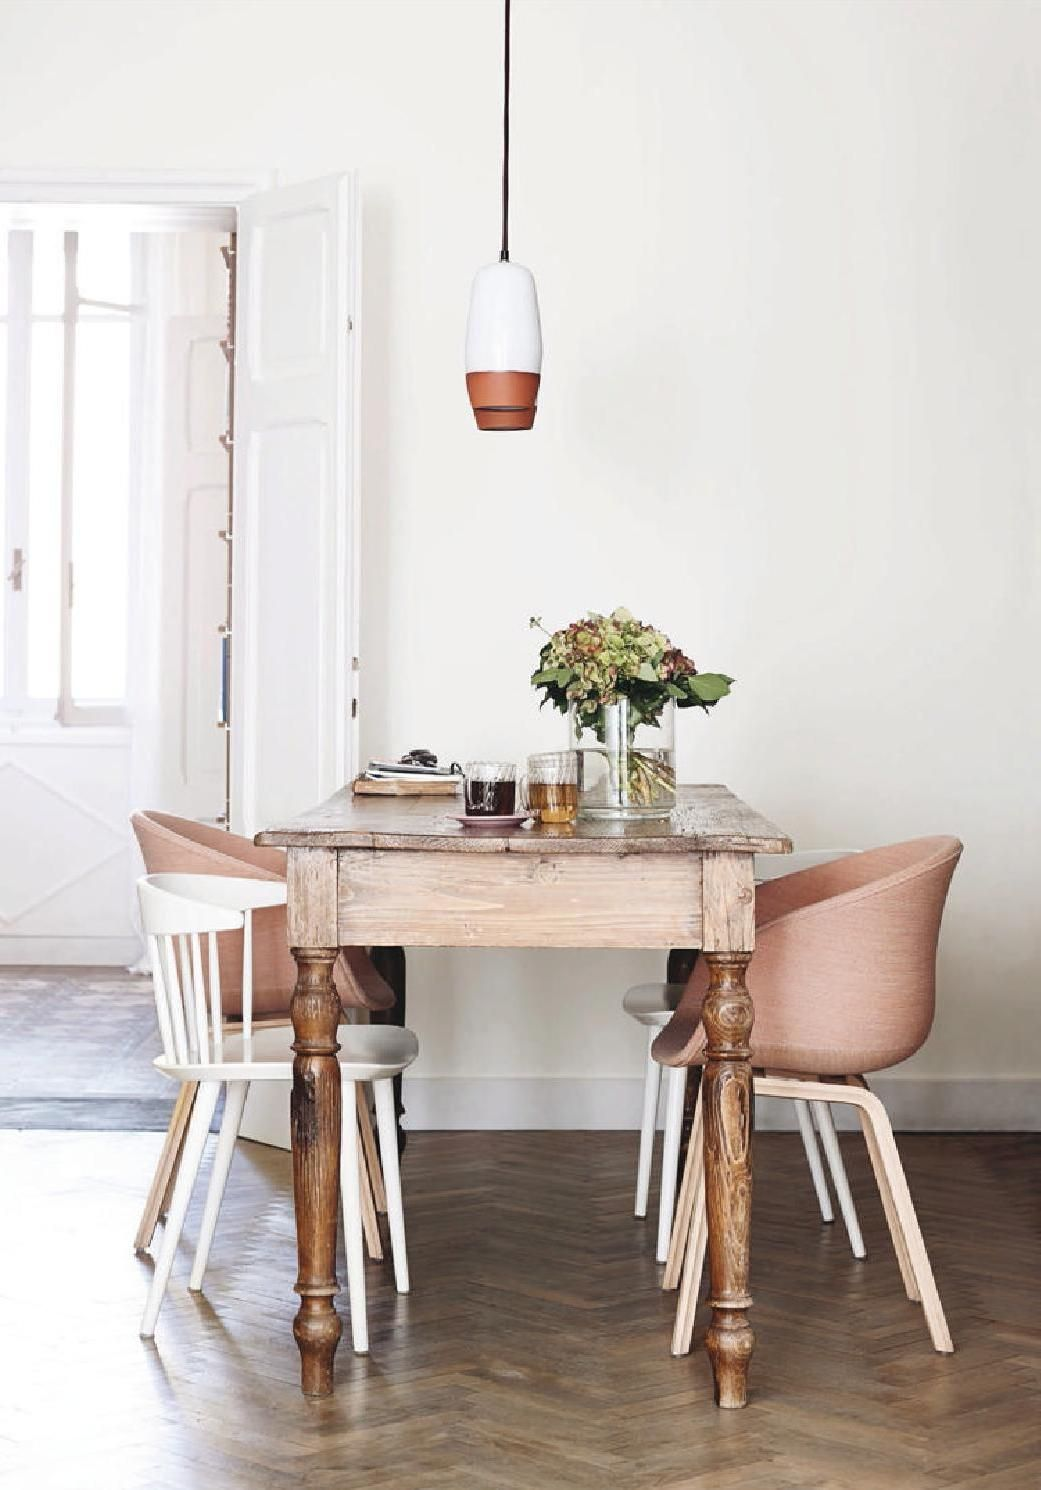 Home Interior Design Lovely Table With Mixed Chairs Hid - Esstisch Stühle Black Friday